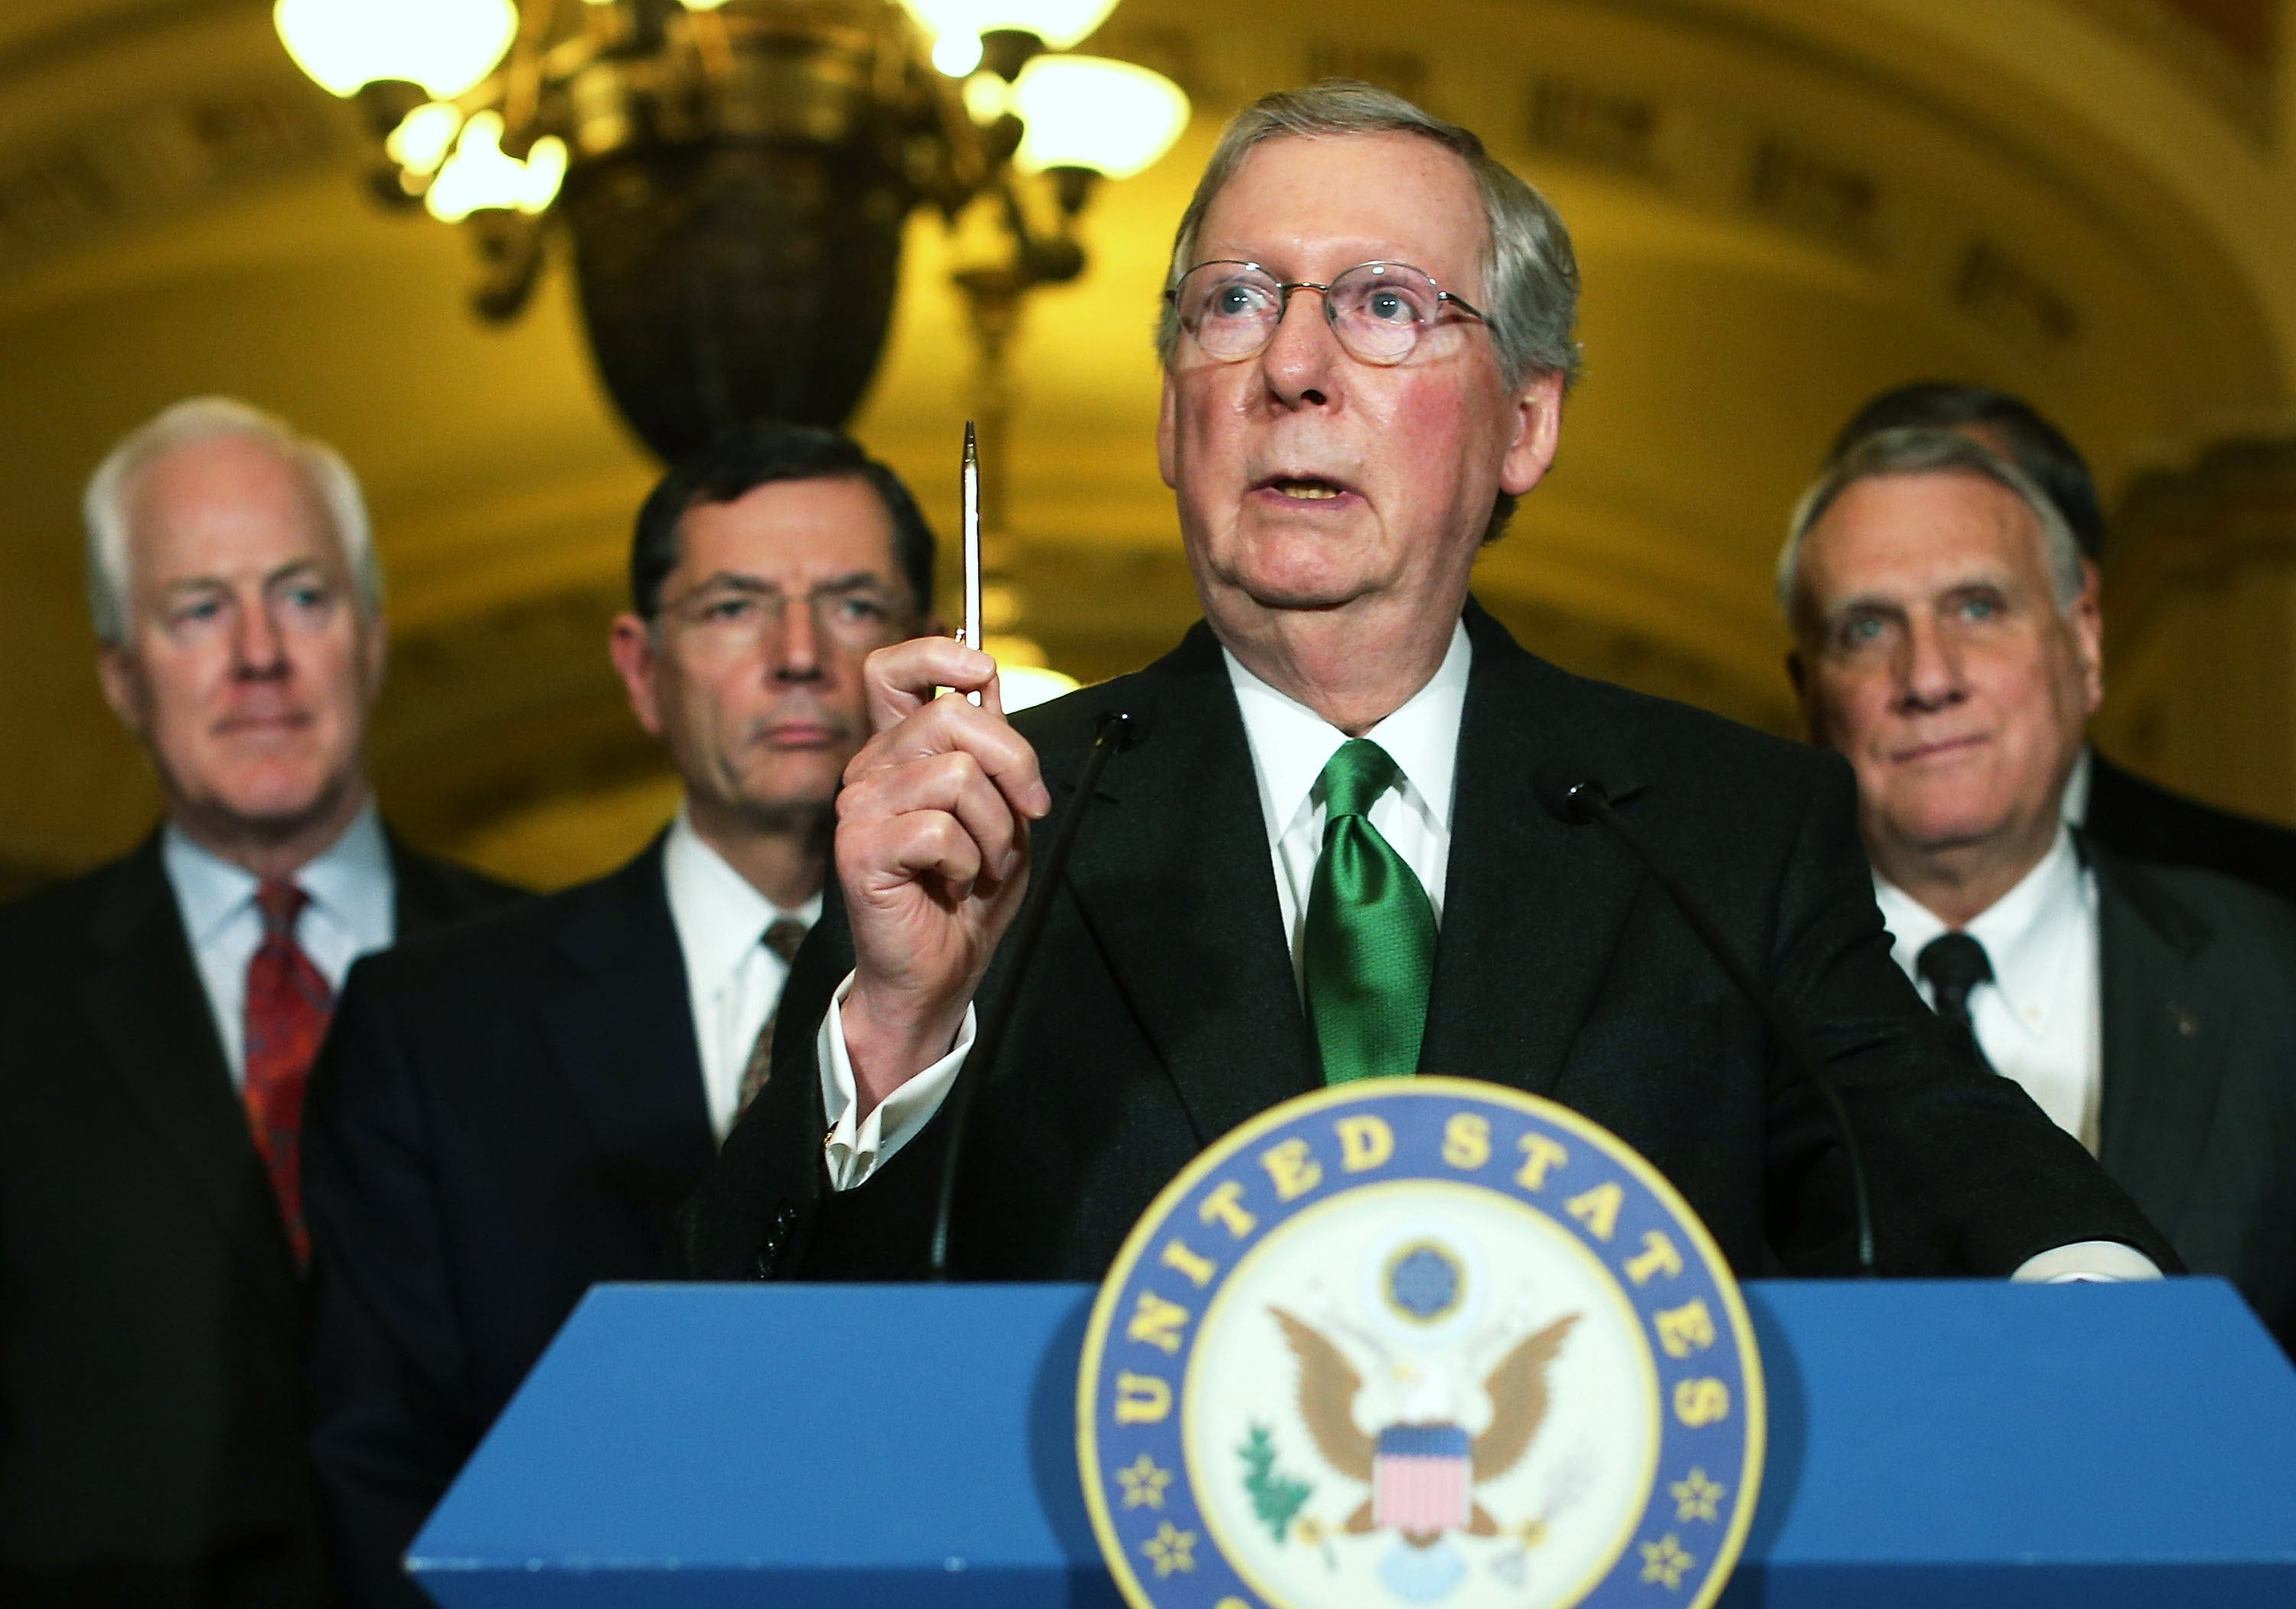 Senate Hits New Low as Mitch McConnell Filibusters Himself